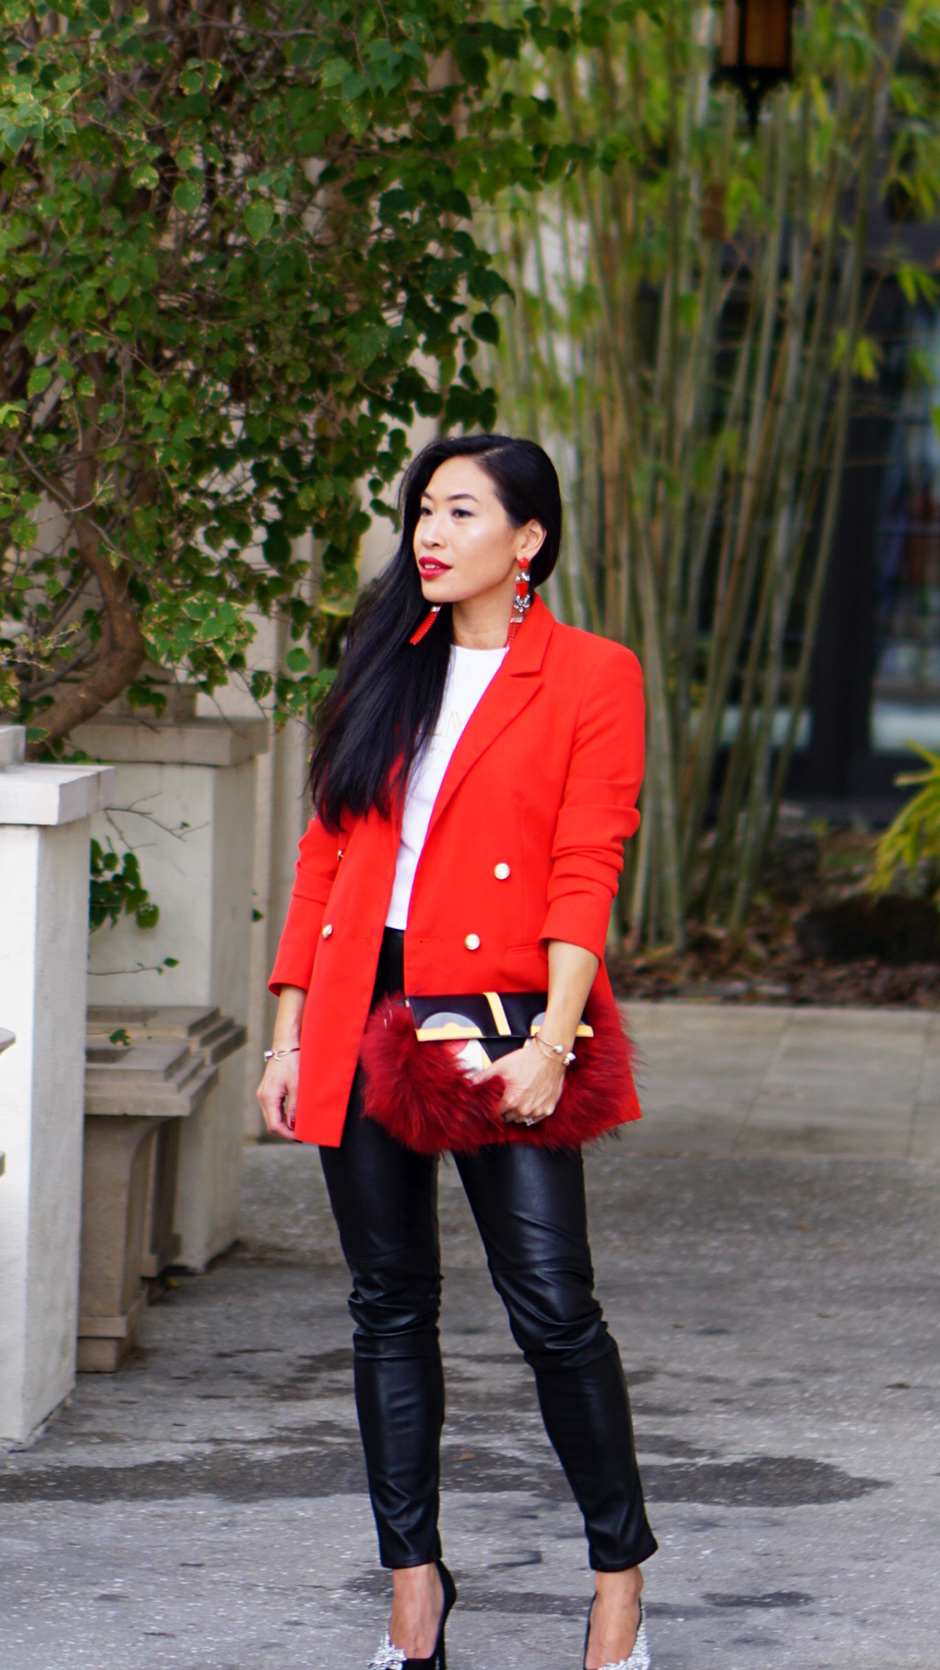 Easy Ways to Add Color to Your Wardrobe #fashiontips #outfitinspiration #redoutfit #redblazer #fashionblog #fashionblogger #styleinspiration #outfitinspo #crystalheels #runwaystyle #boyfriendblazer #streetstyle #streetstyleinspo #streetstyleinspiration #styleinspiration #outfitdetails #shopthelook #Furbag #balmain #tshirt #stylish #nakd #zara #asos #miumiu